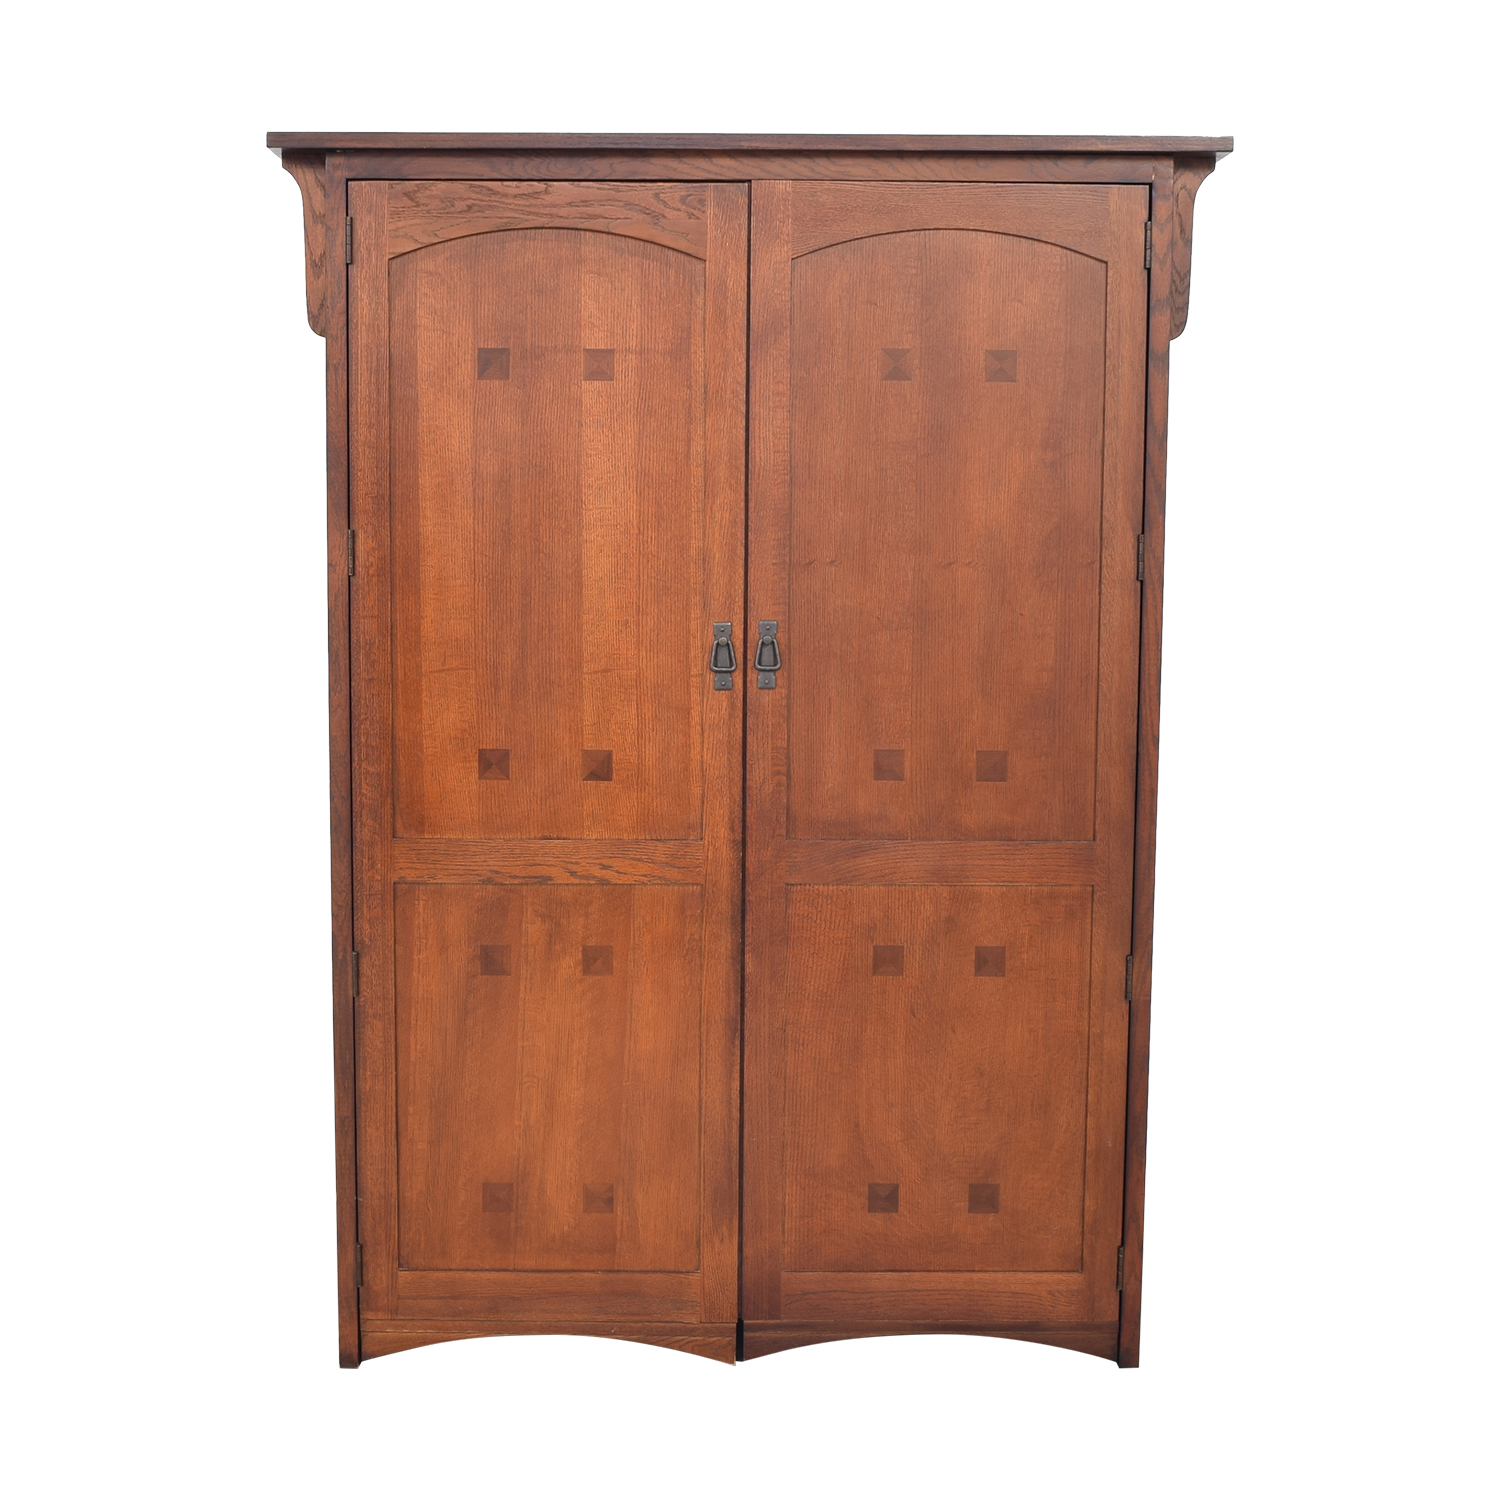 Southern Furniture of Conover Southern Furniture of Conover Armoire Desk dimensions